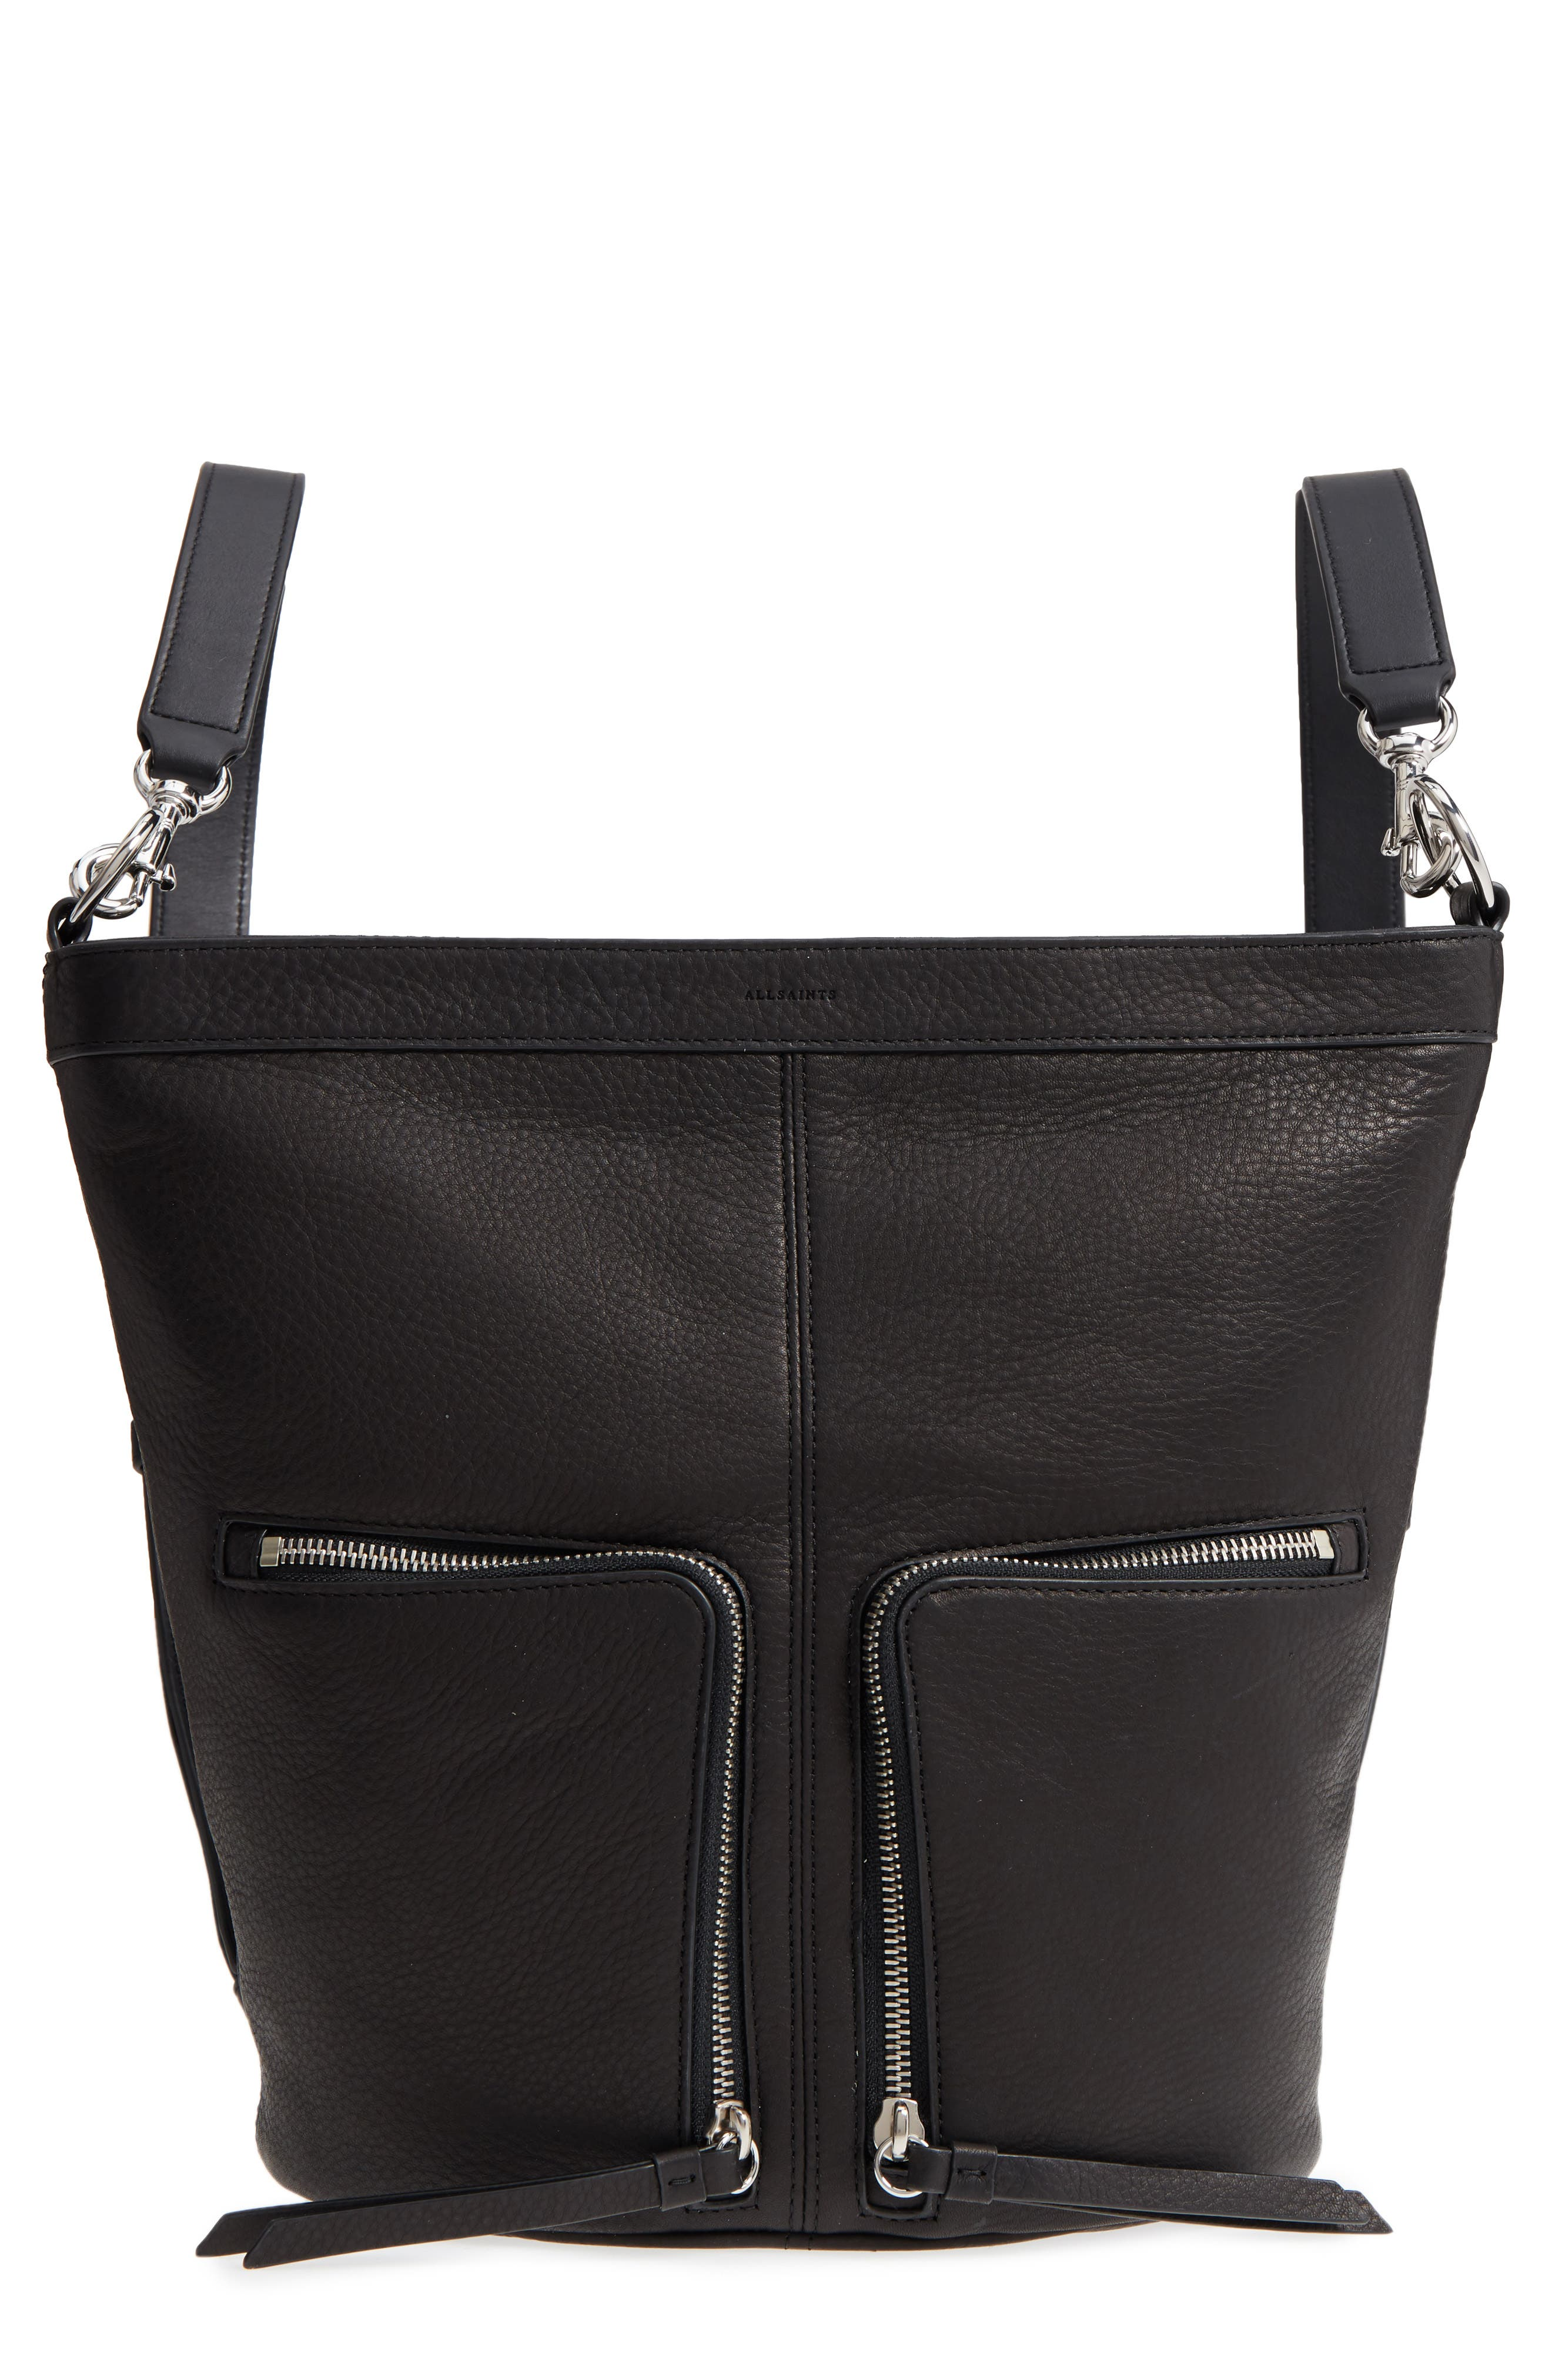 FETCH SMALL LEATHER BACKPACK - BLACK